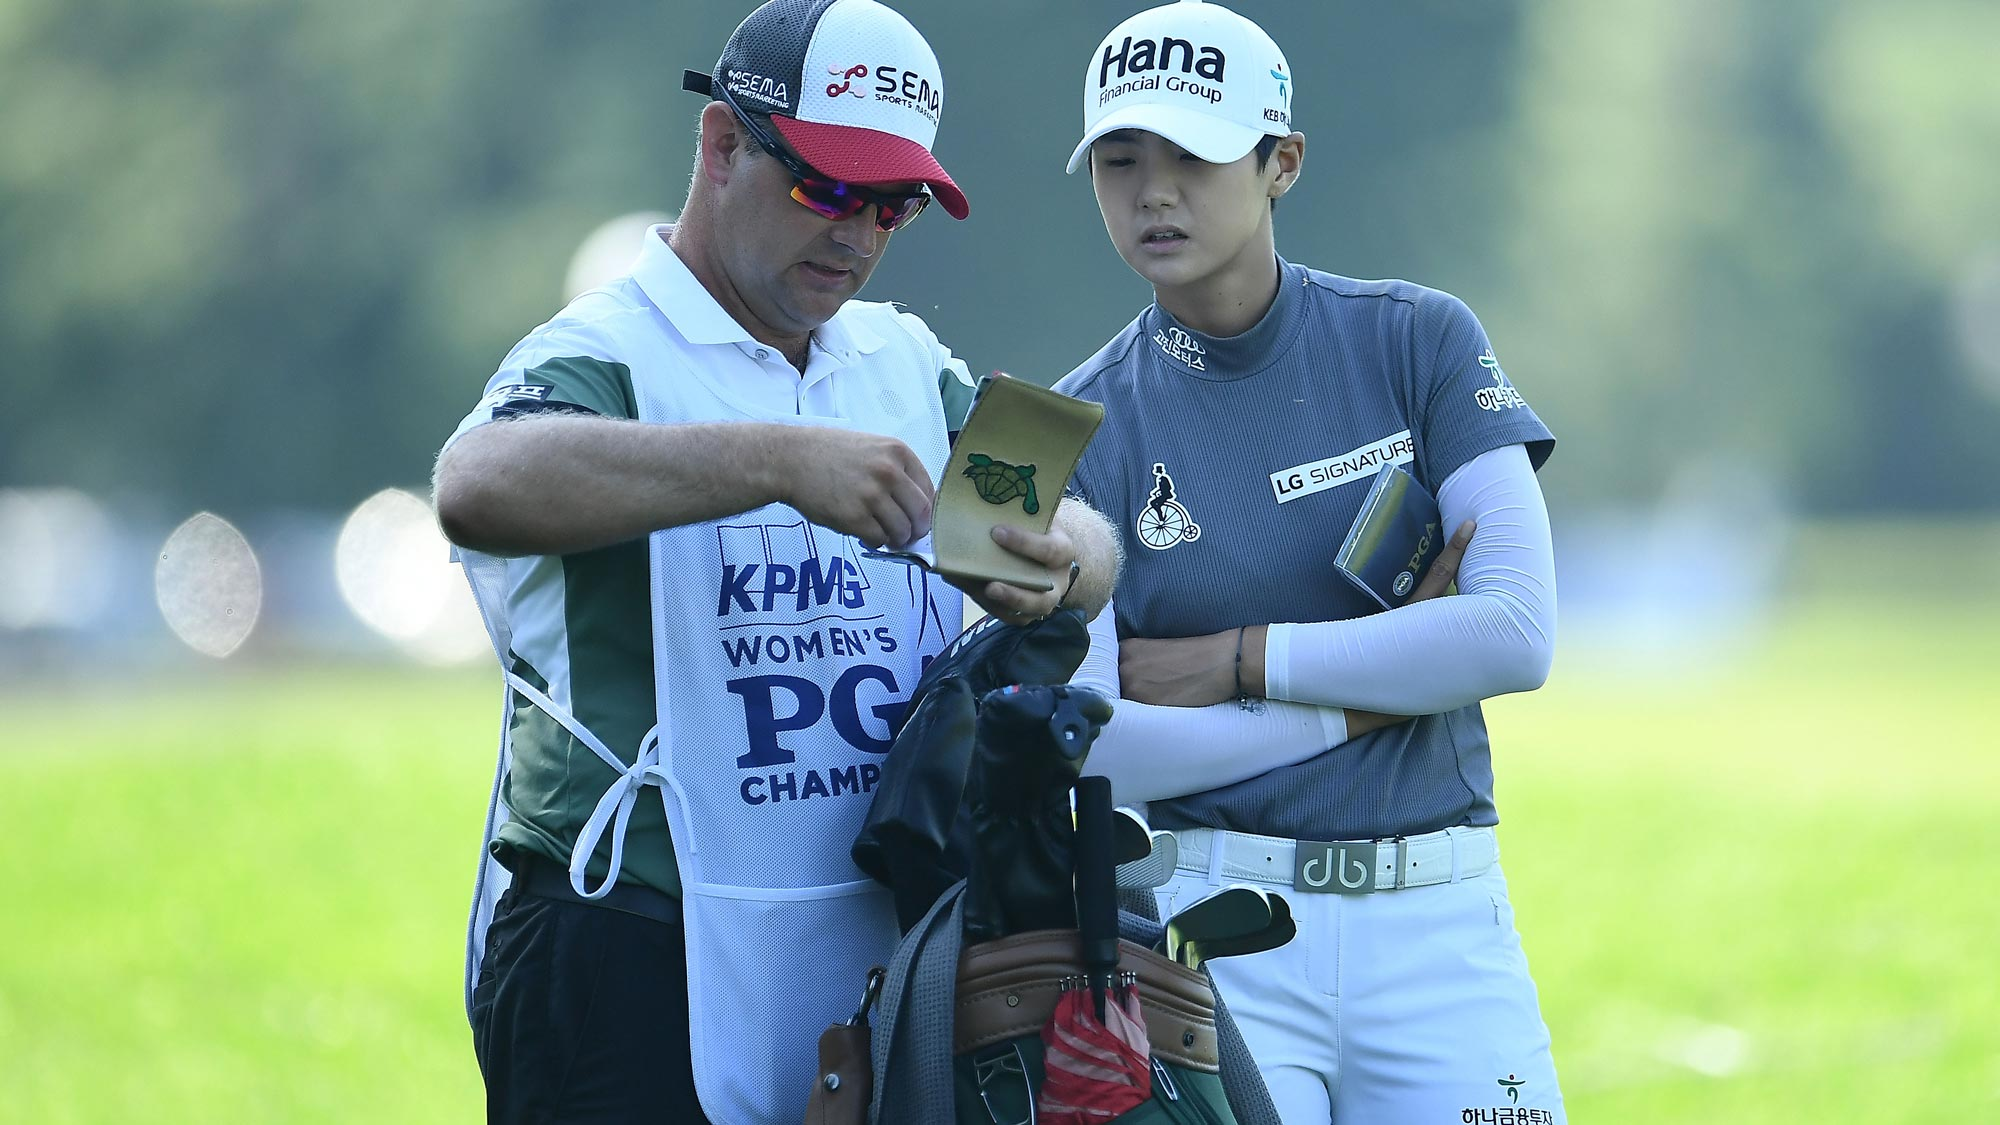 Sung Hyun Park of Korea speaks with her caddie on the 10th hole during the second round of the KPMG Women's PGA Championship